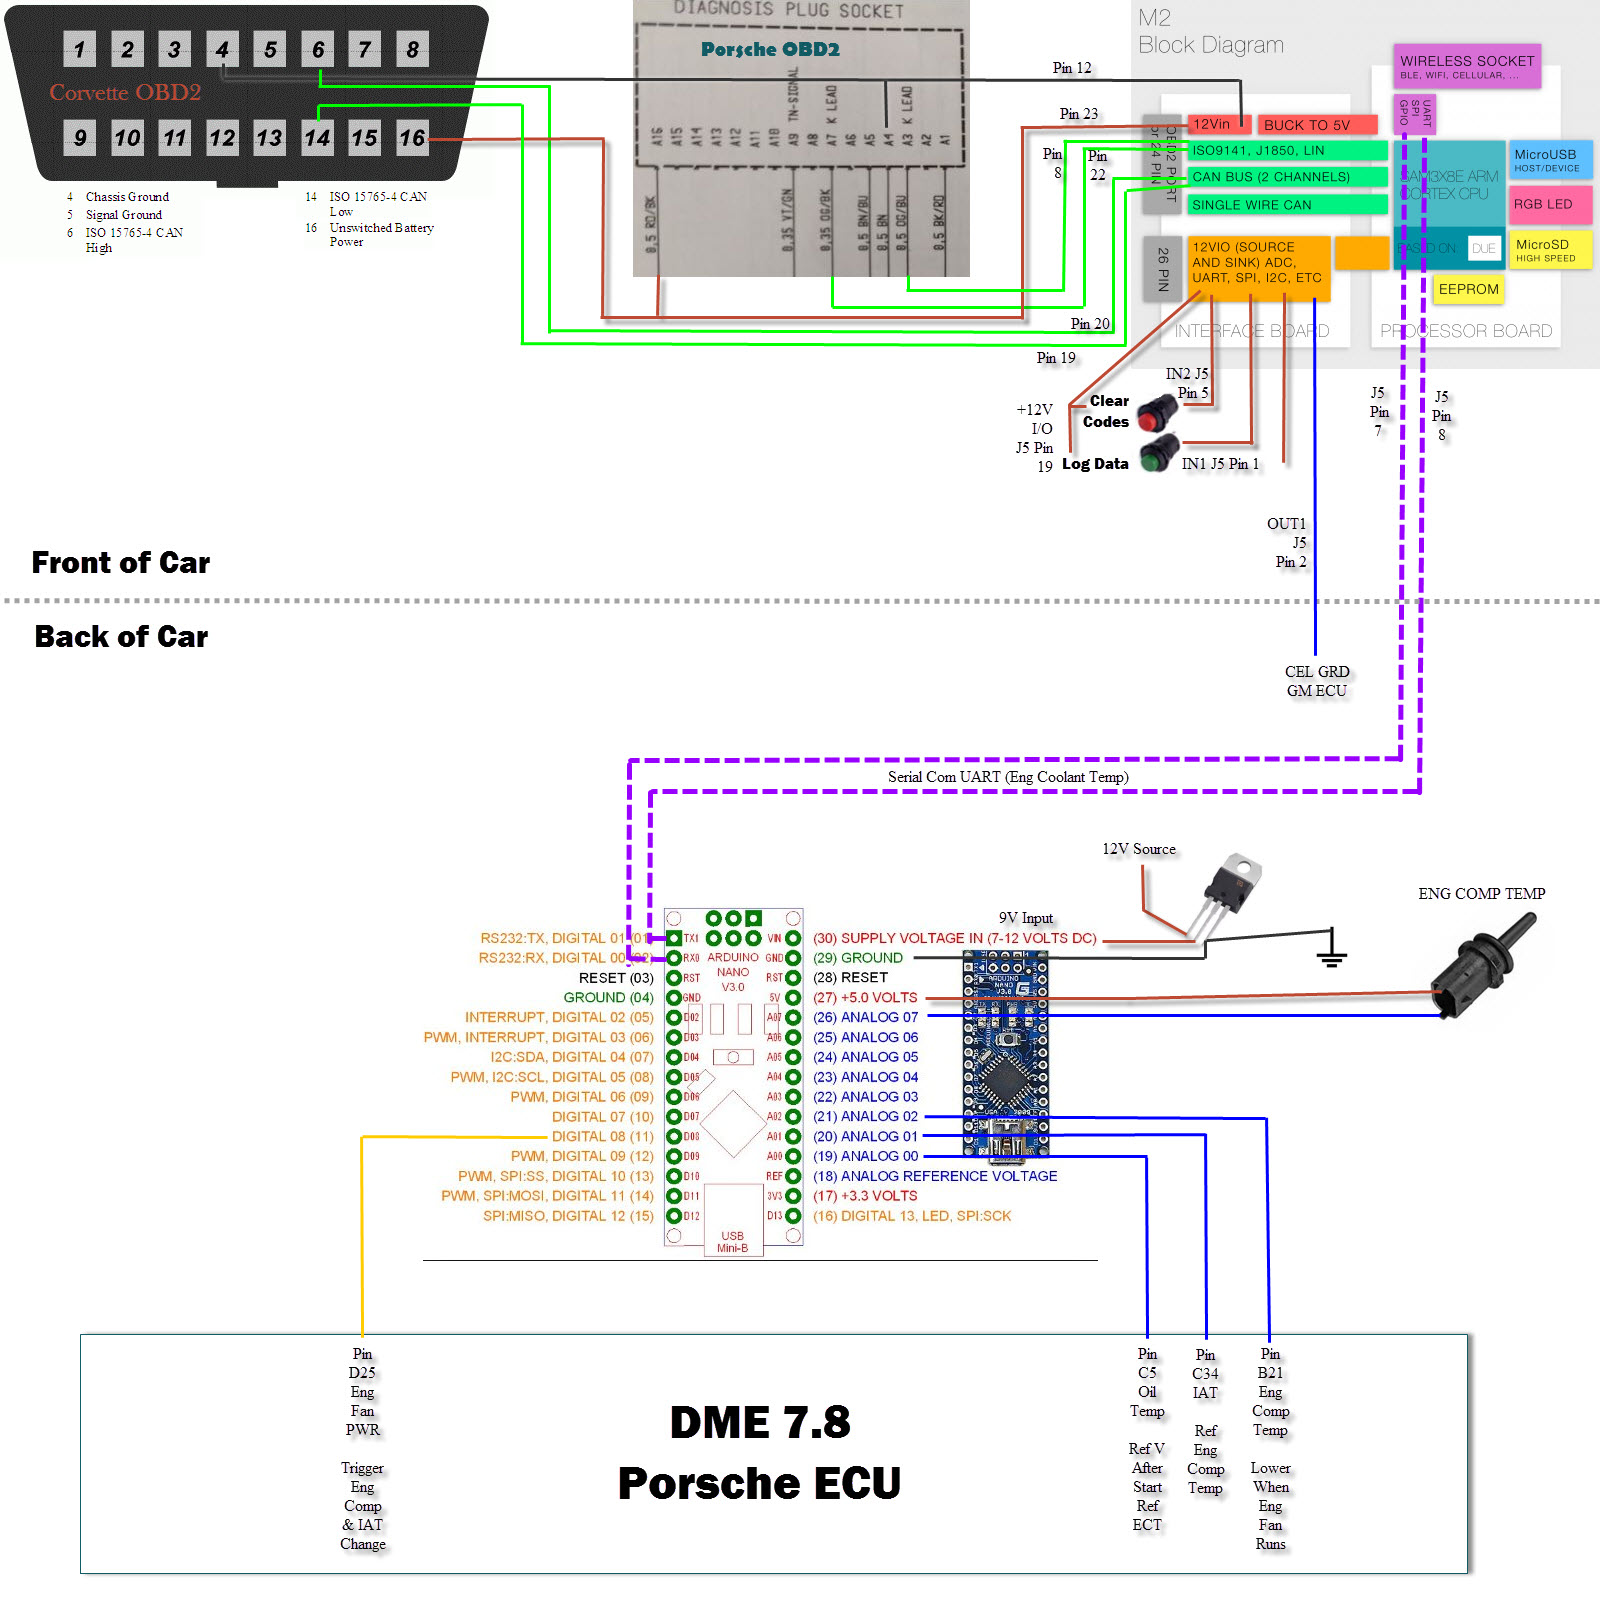 Arduino Can Bus Wiring Diagram Besides Obd2 Connector Pinout Images Gallery Engine Swap Gm Ls3 In Porsche 996 Getting Started Macchina Rh Forum